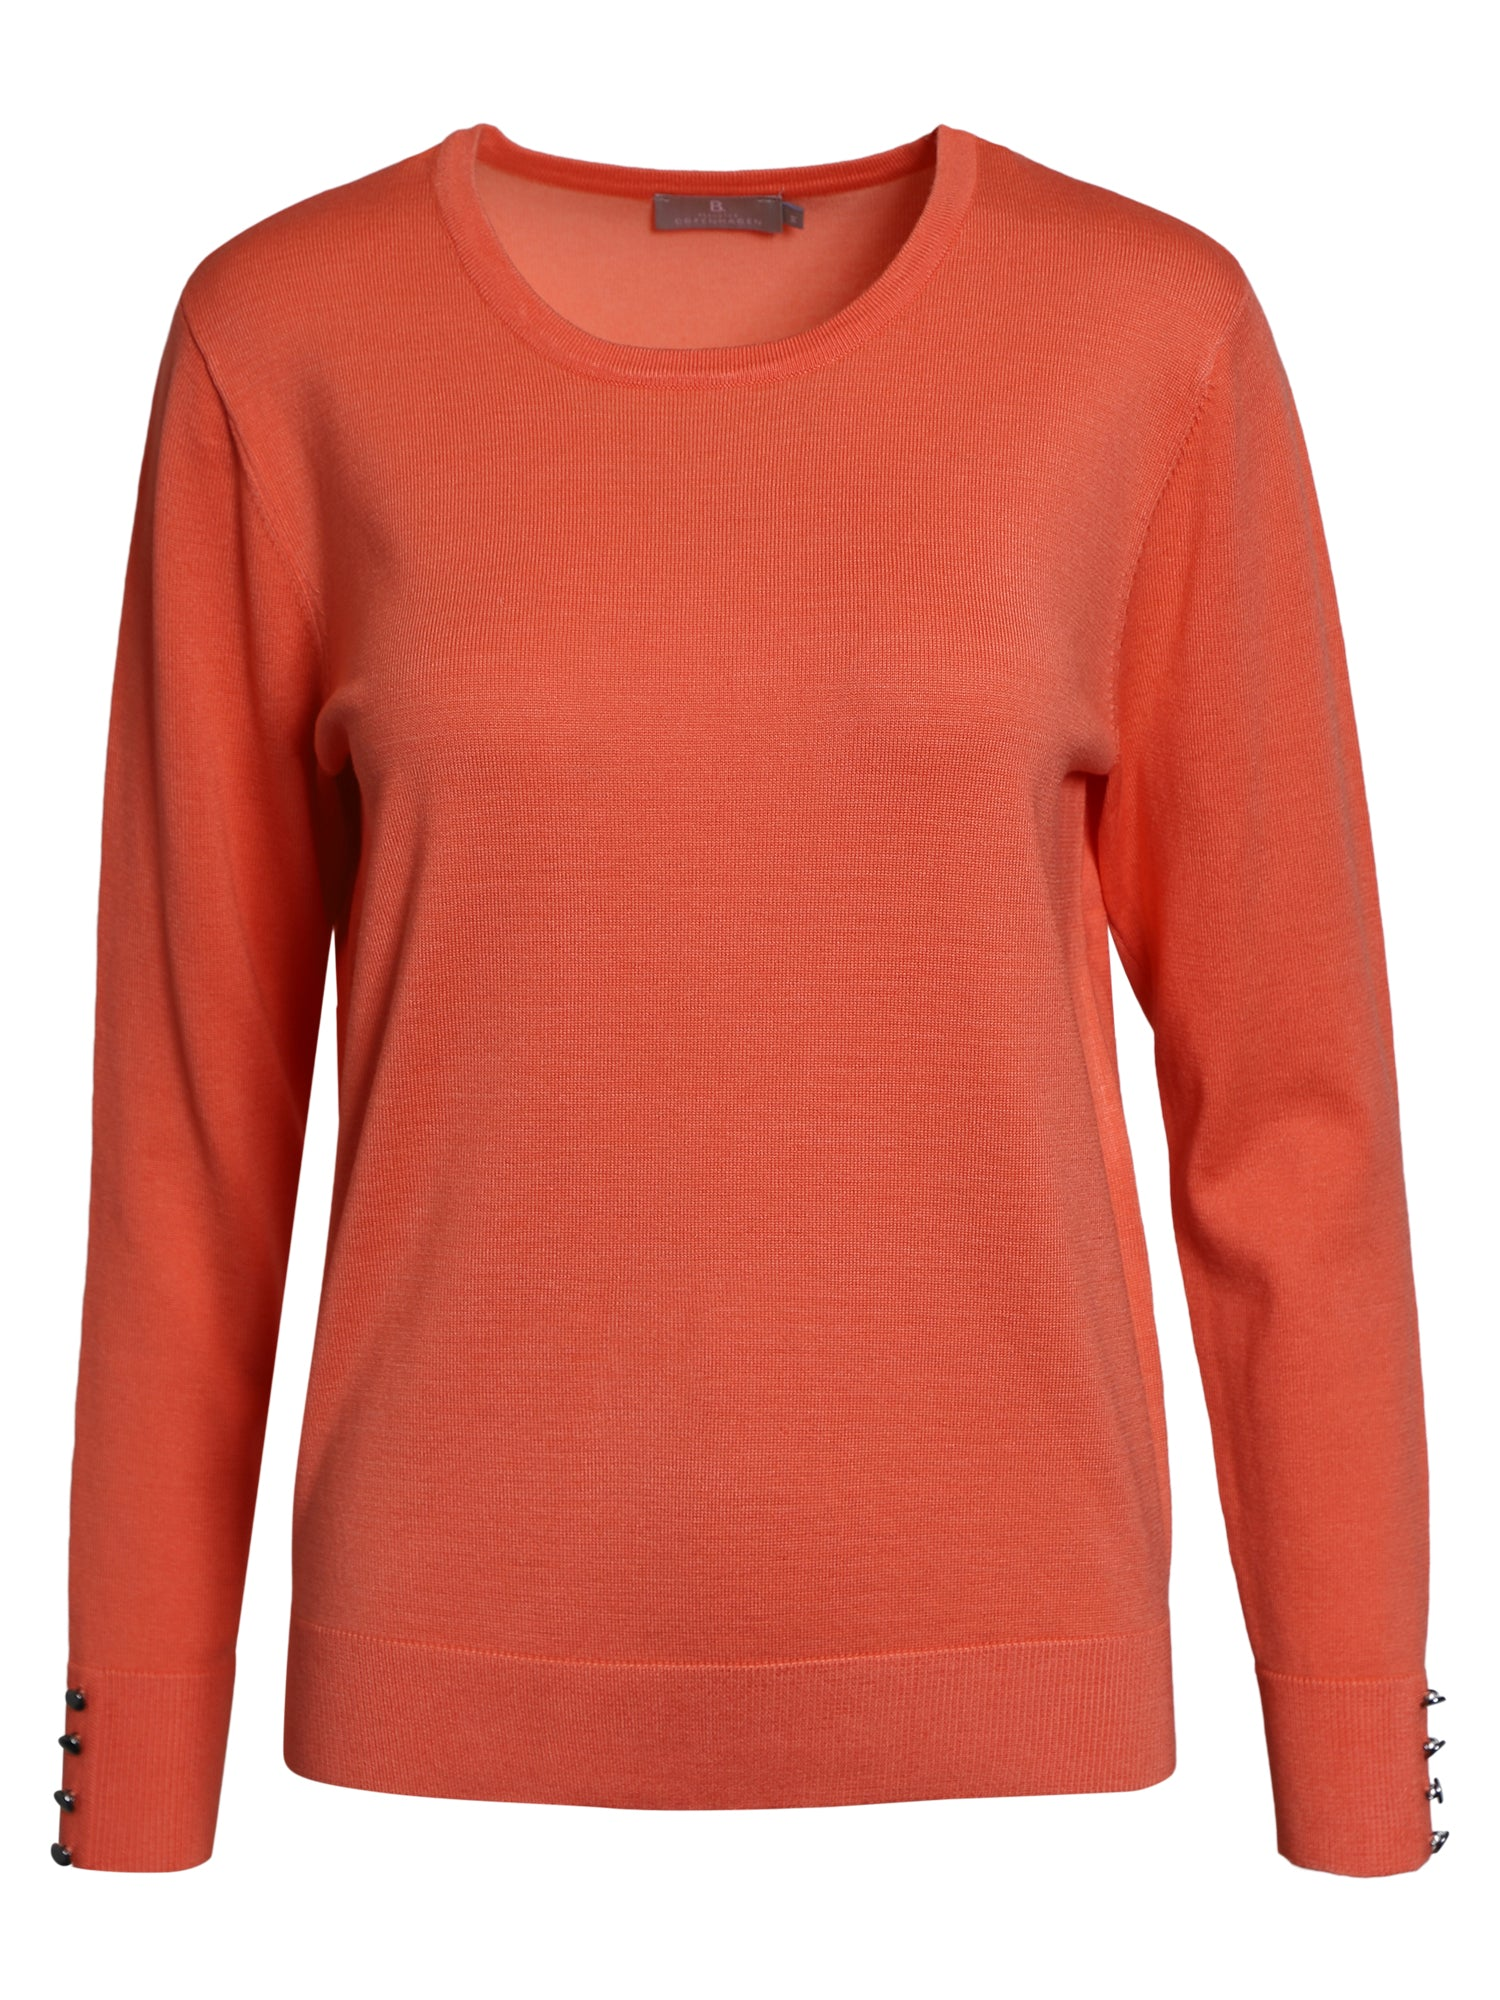 Image of   Pullover med O-hals - Living Coral